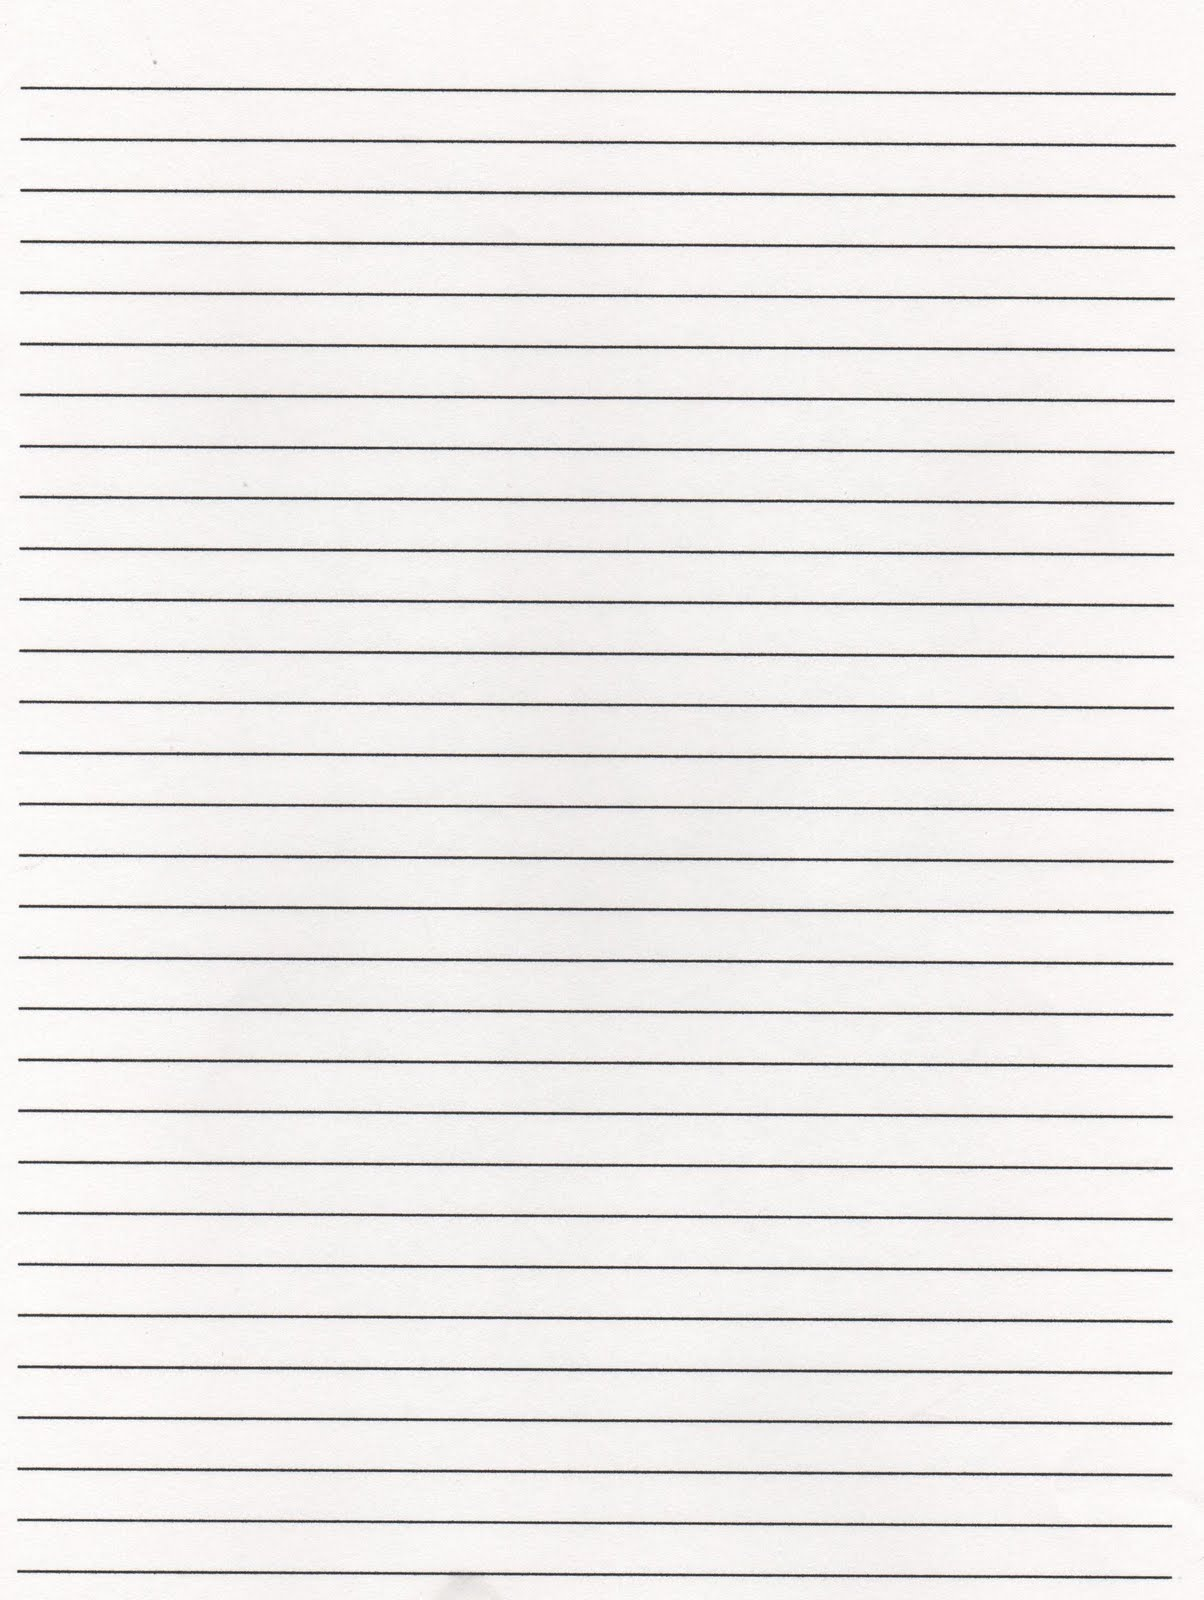 writing paper template – Blank Lined Writing Paper